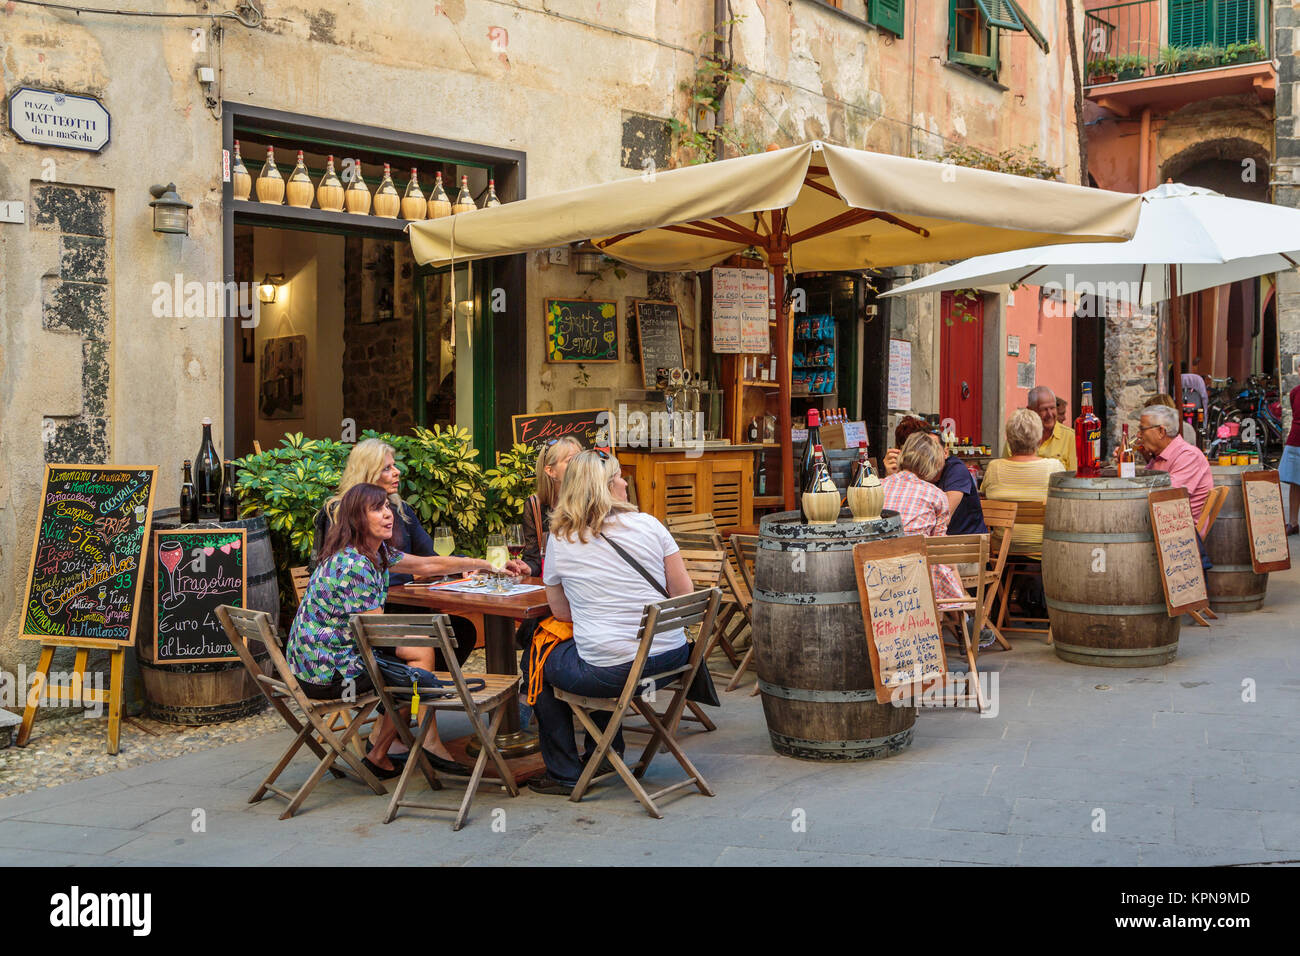 An outdoor restaurant in Monterosso al Mare, Liguria, Italy, Europe. Stock Photo